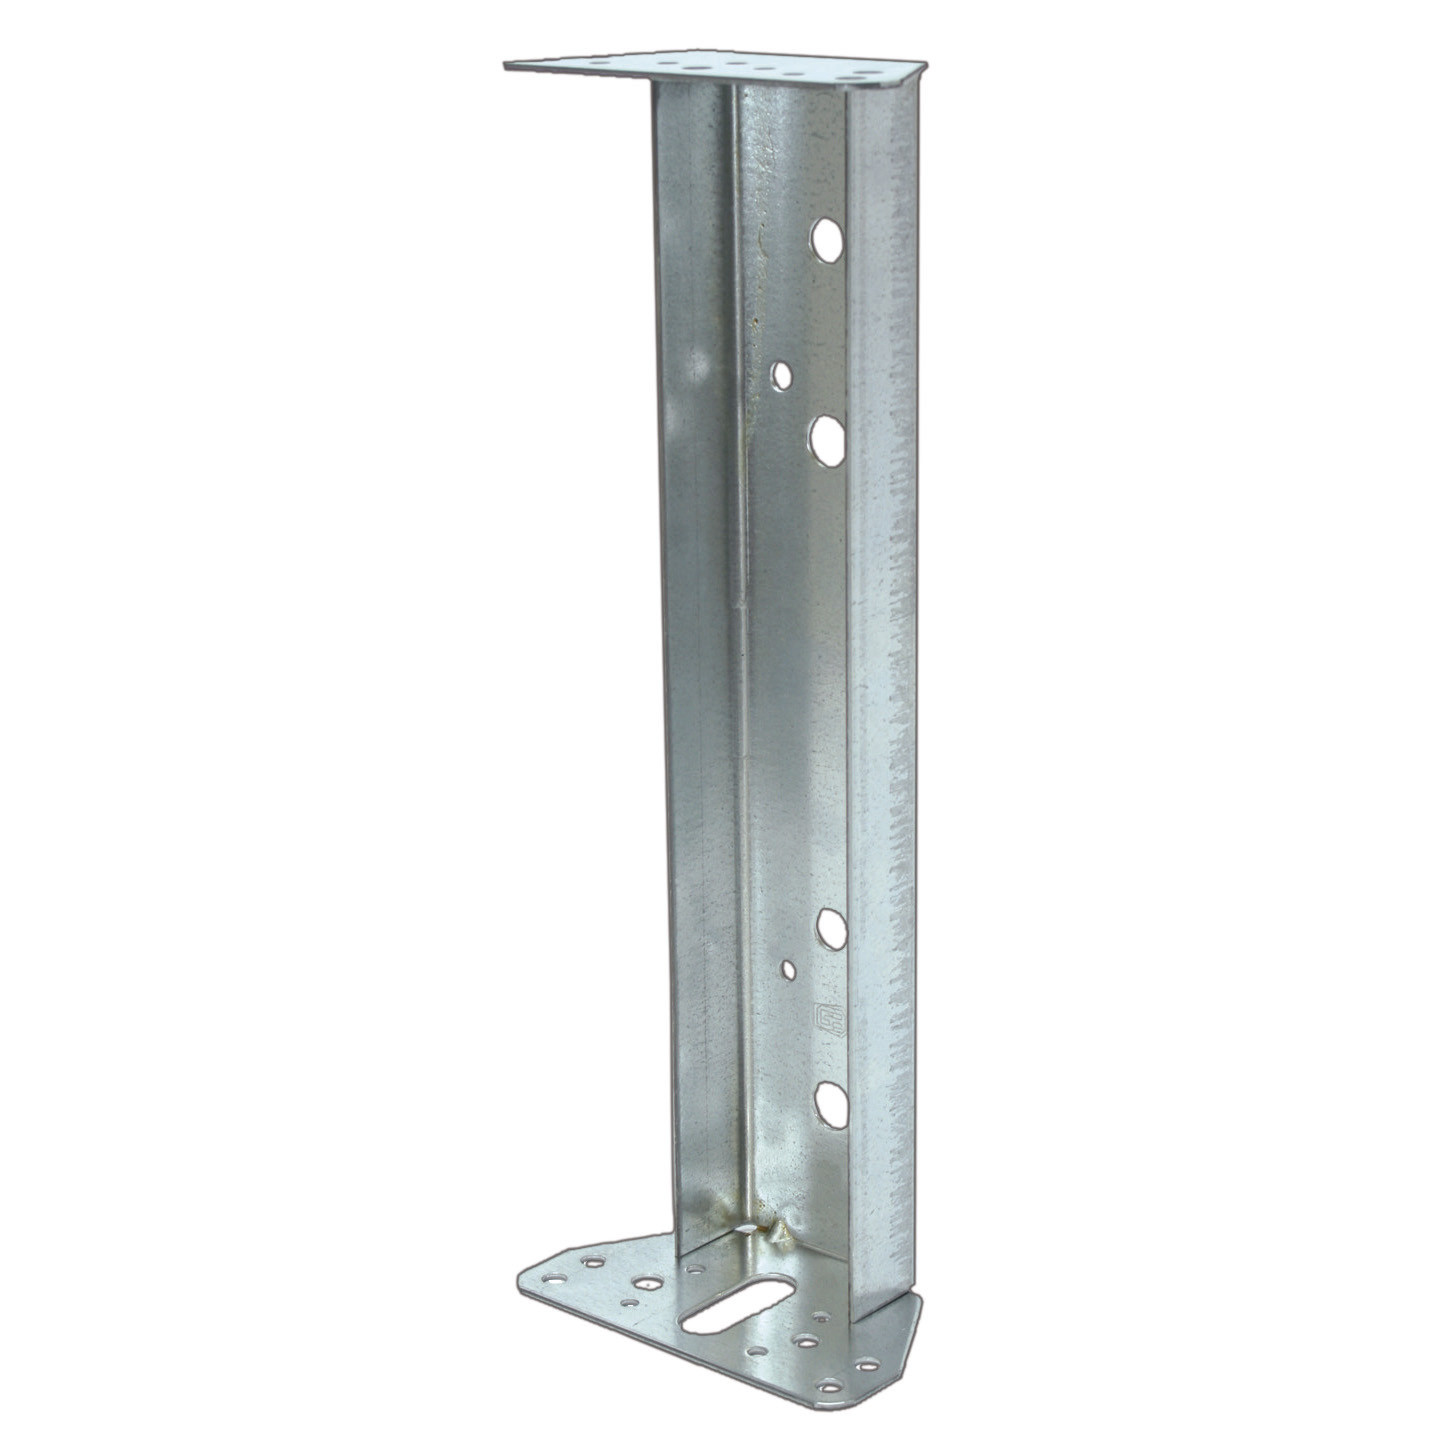 Window front frame support 60x70x500 115x2 ZM